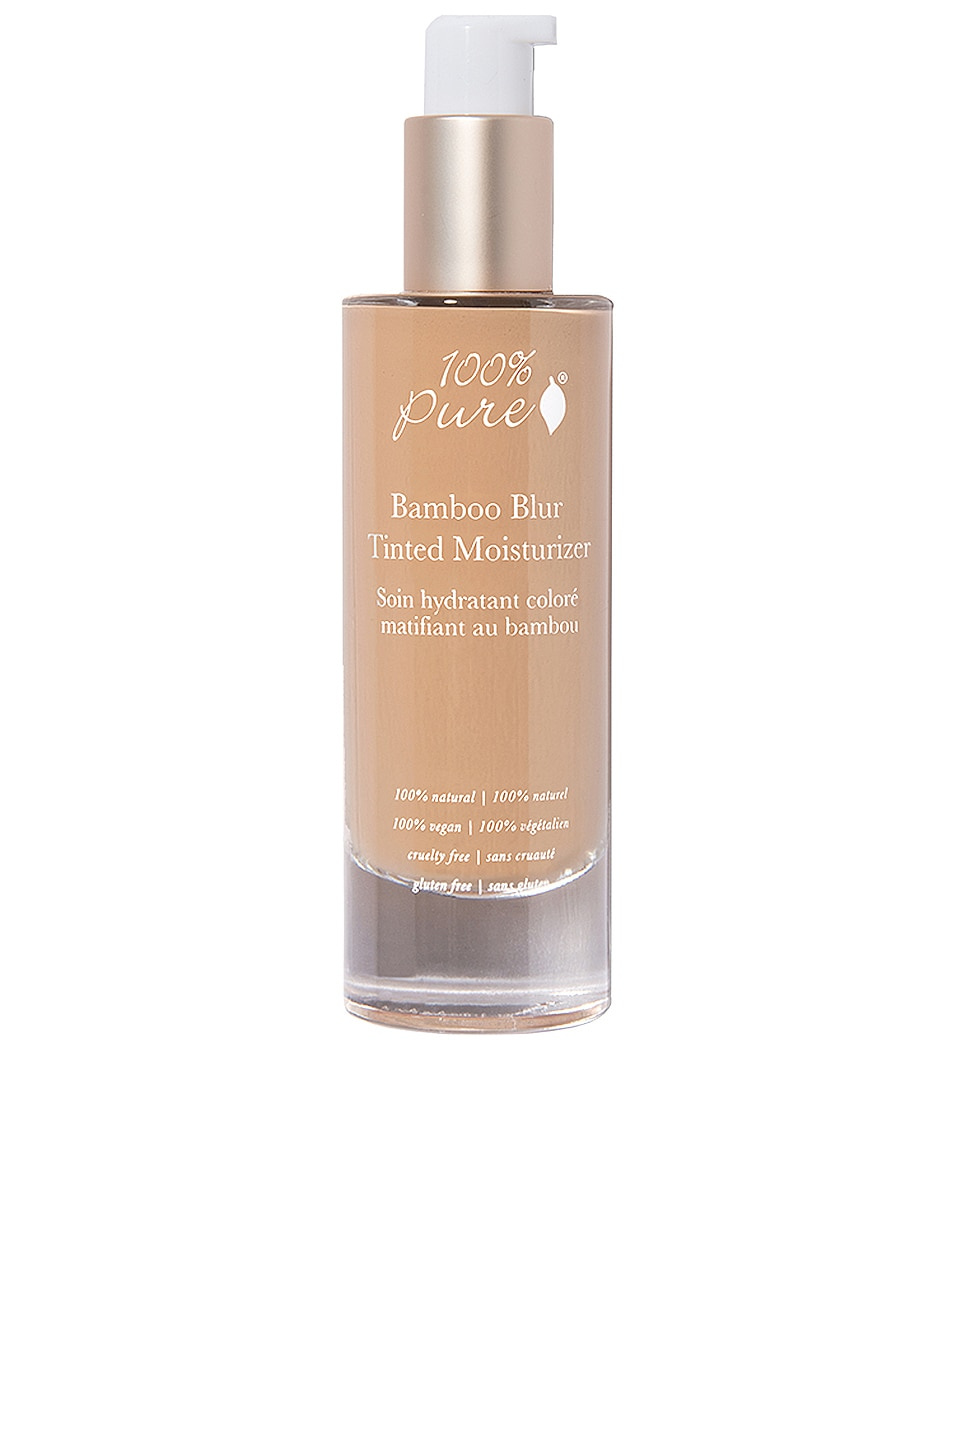 100% Pure Bamboo Blur Tinted Moisturizer in Toffee